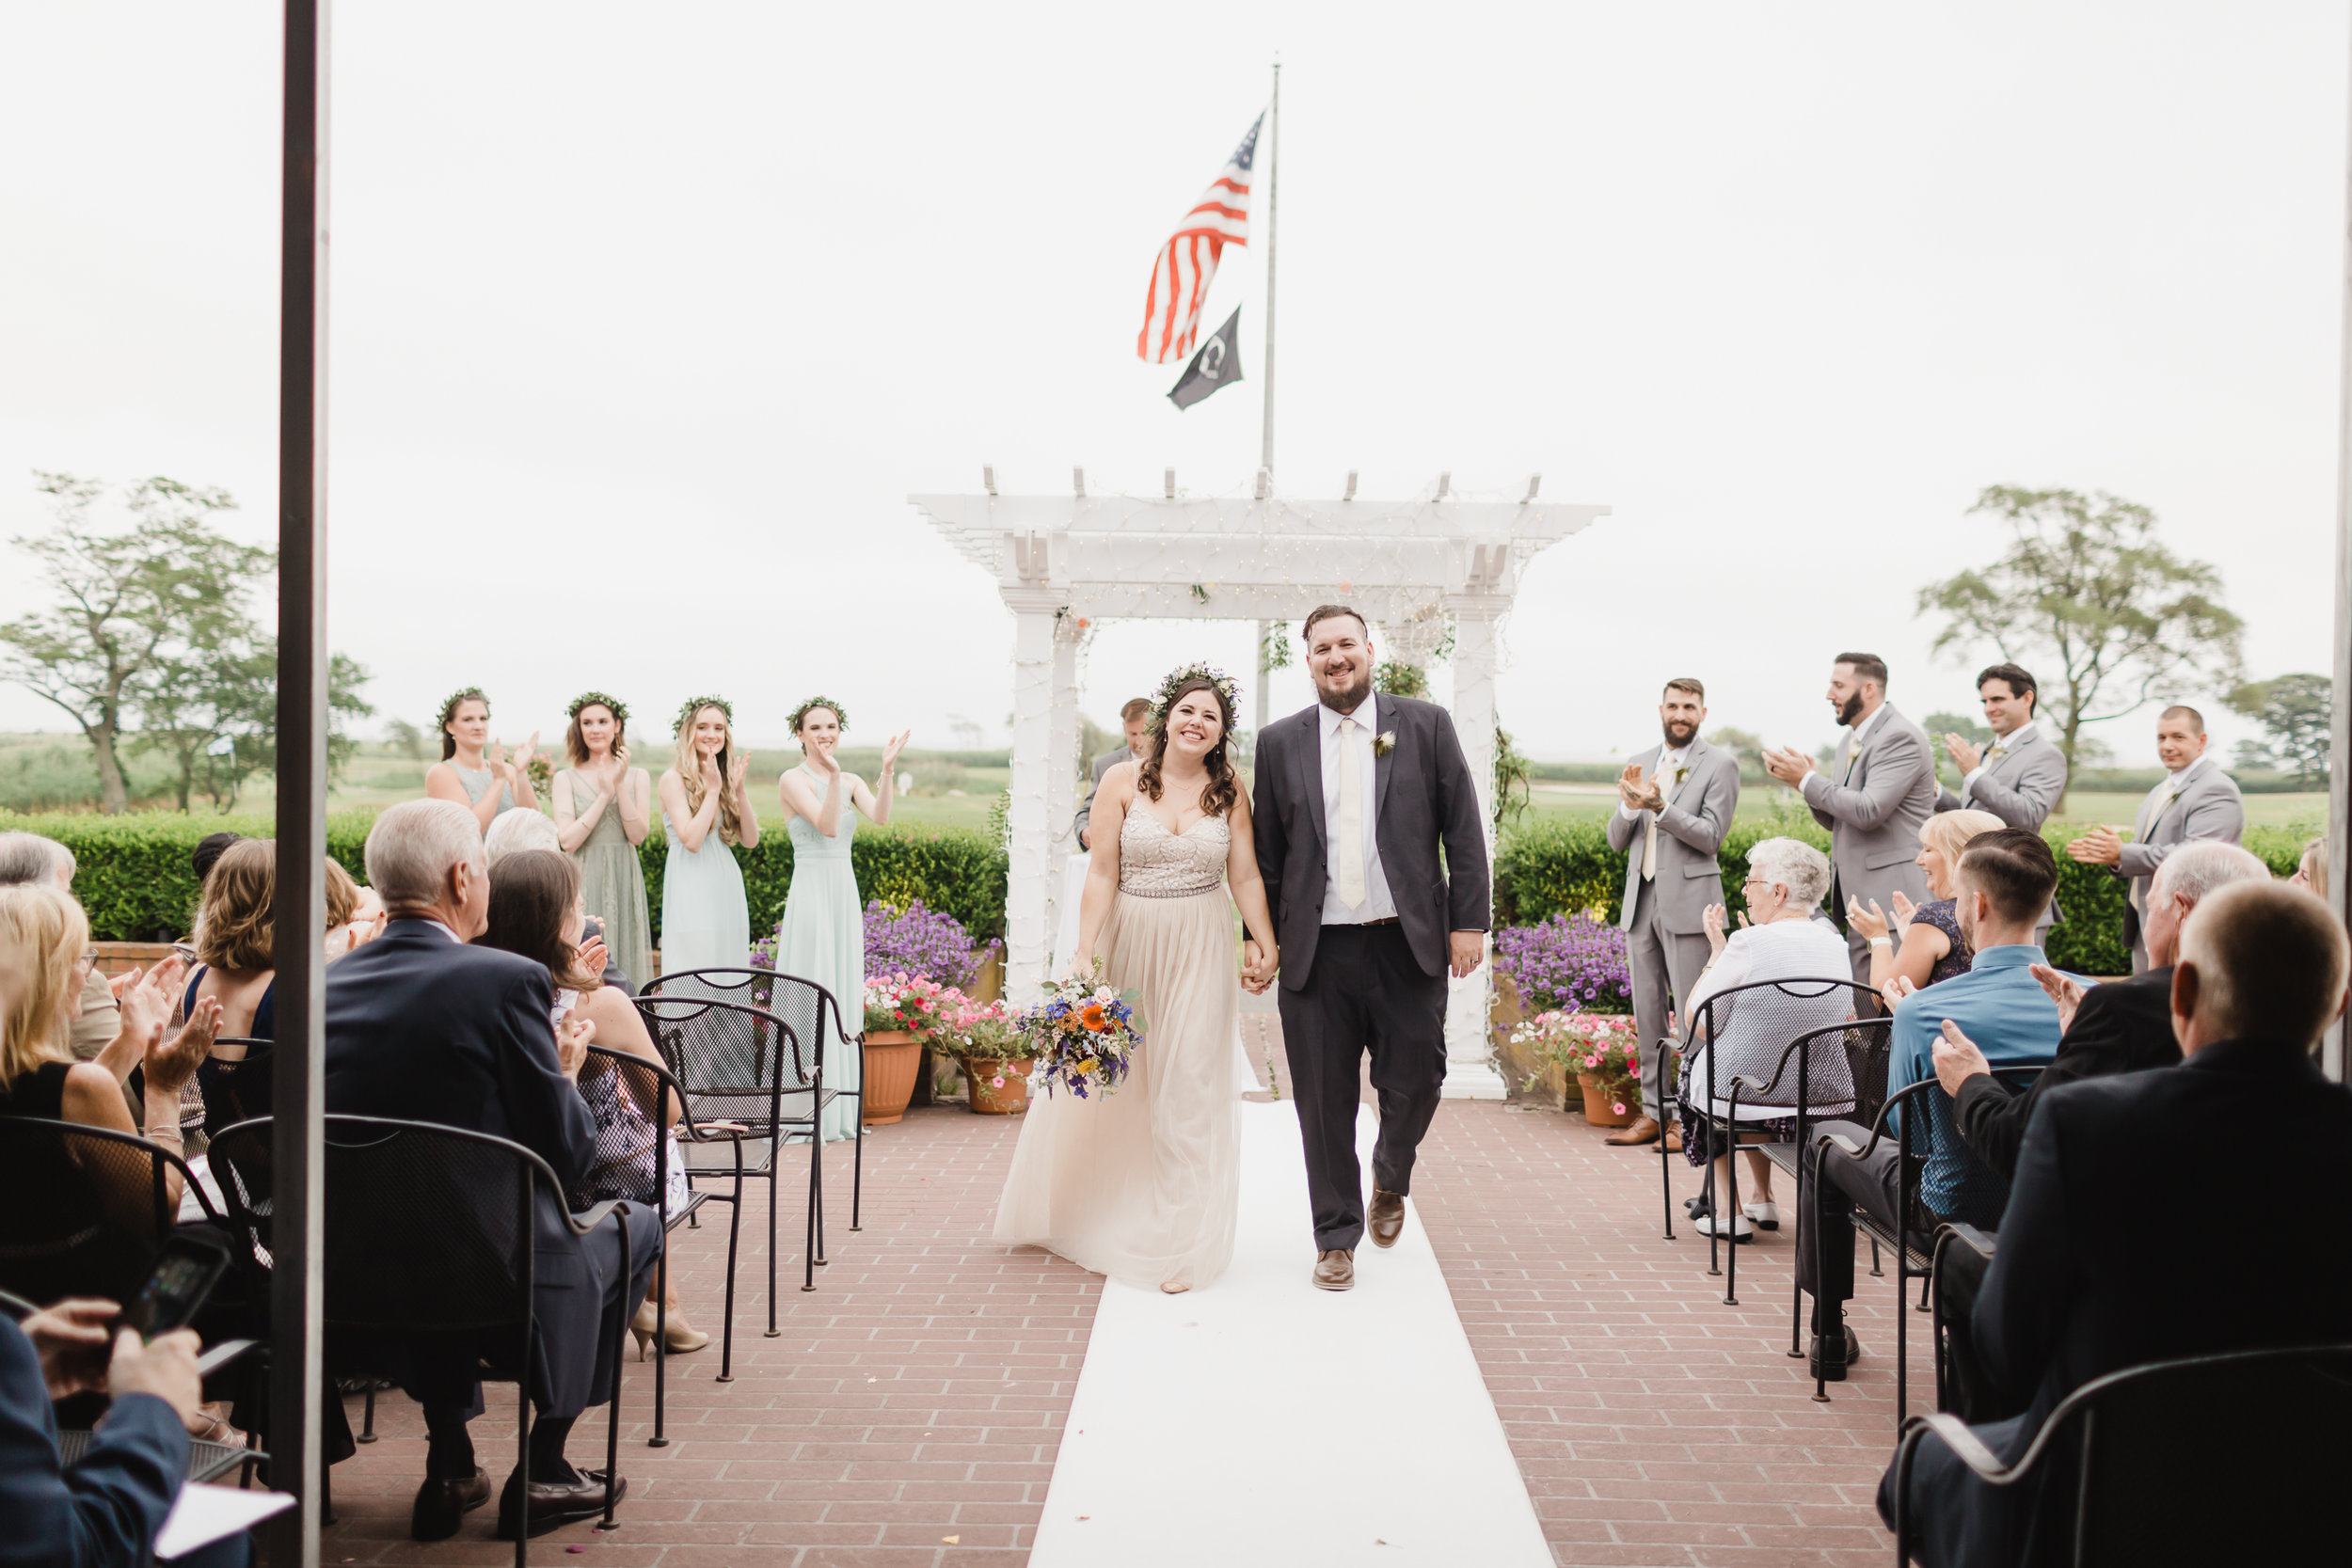 Gianna Keiko Atlanta NYC California Wedding Photographer_Sneak Peek-53.jpg